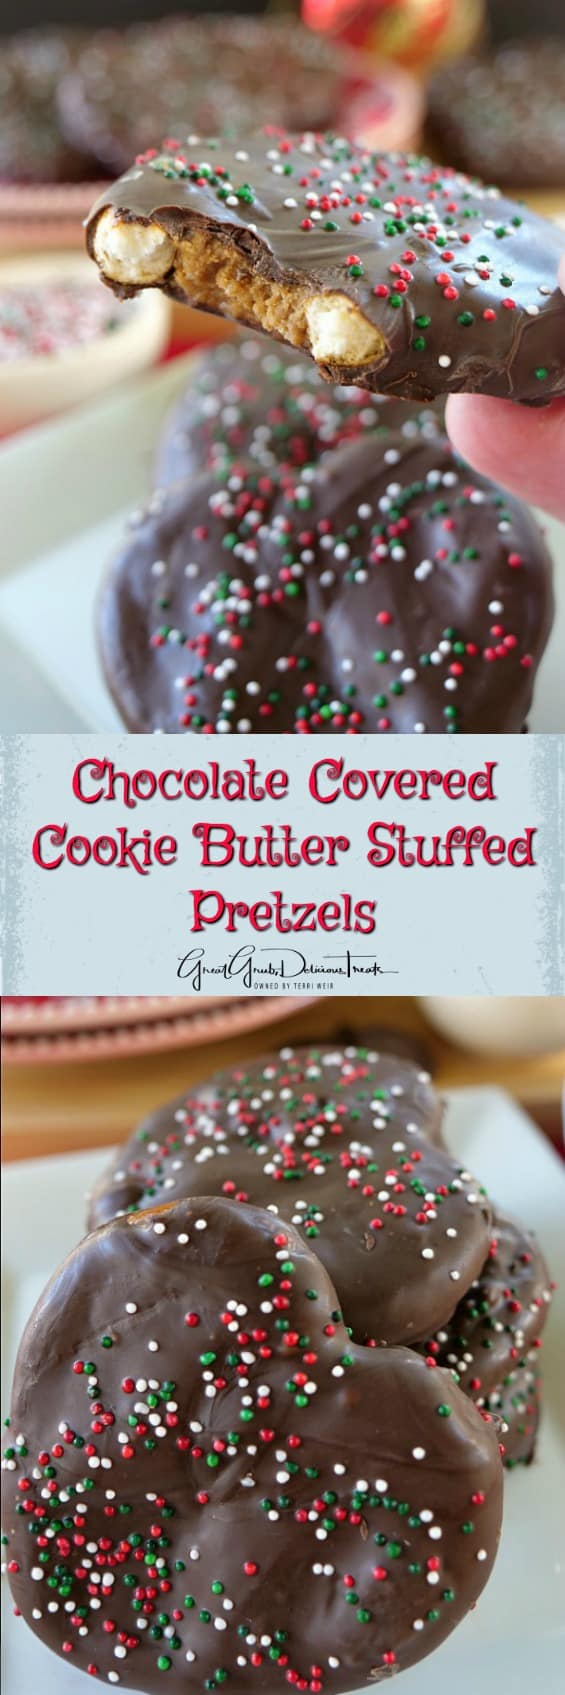 Chocolate Covered Cookie Butter Stuffed Pretzels